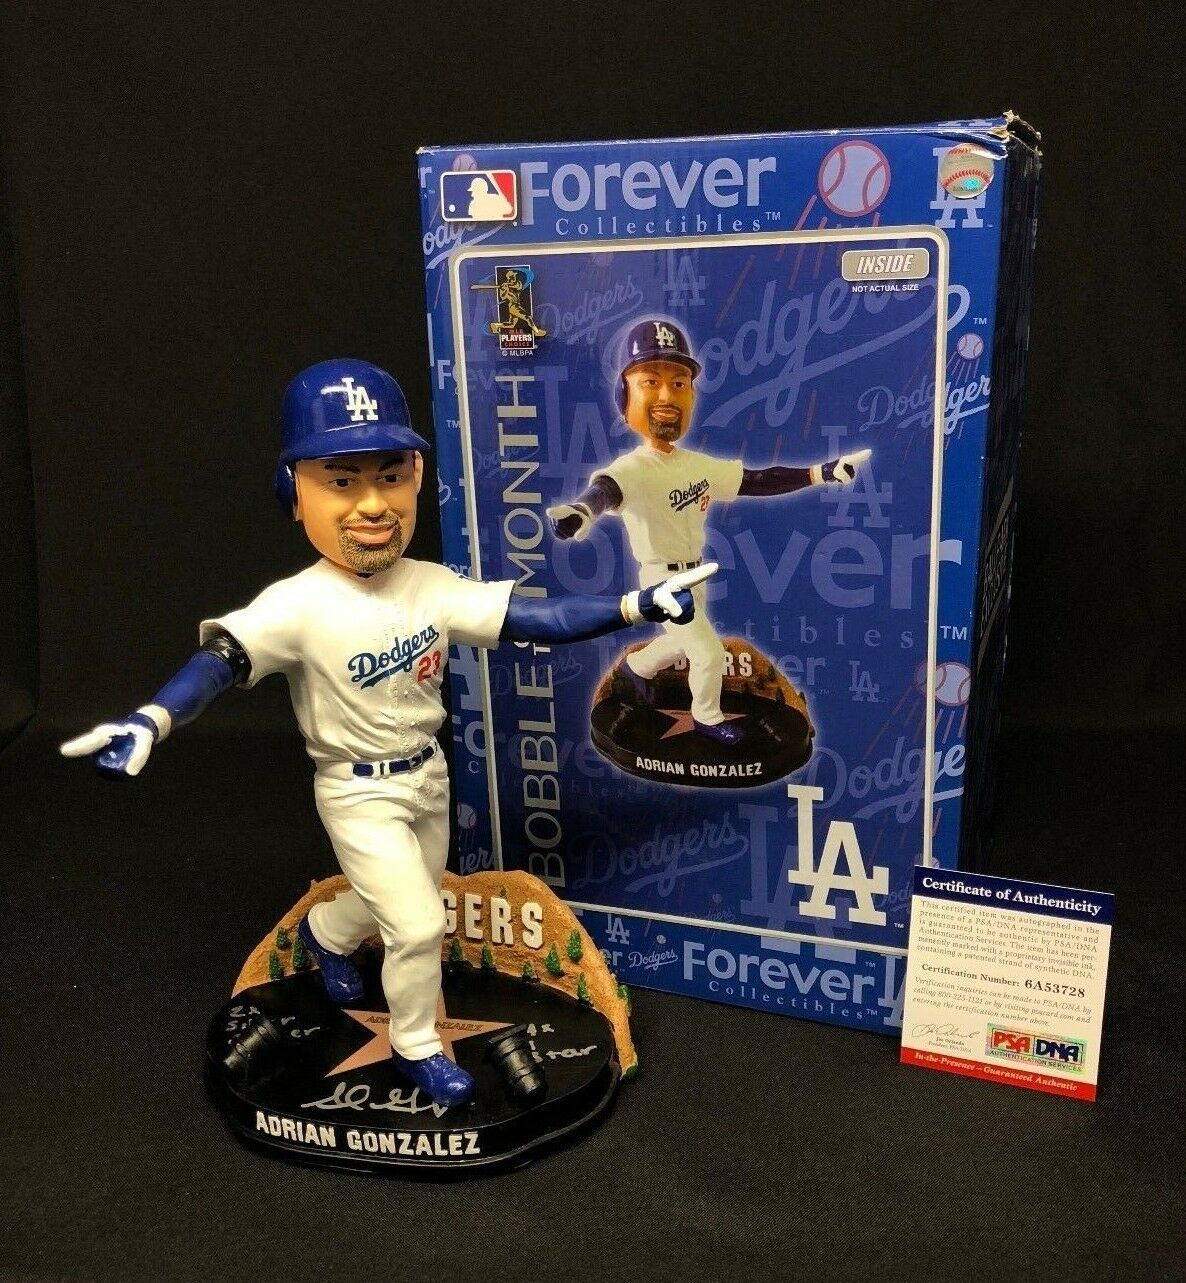 Adrian Gonzalez Signed Los Angeles Dodgers Forever Bobblehead PSA 6A53728